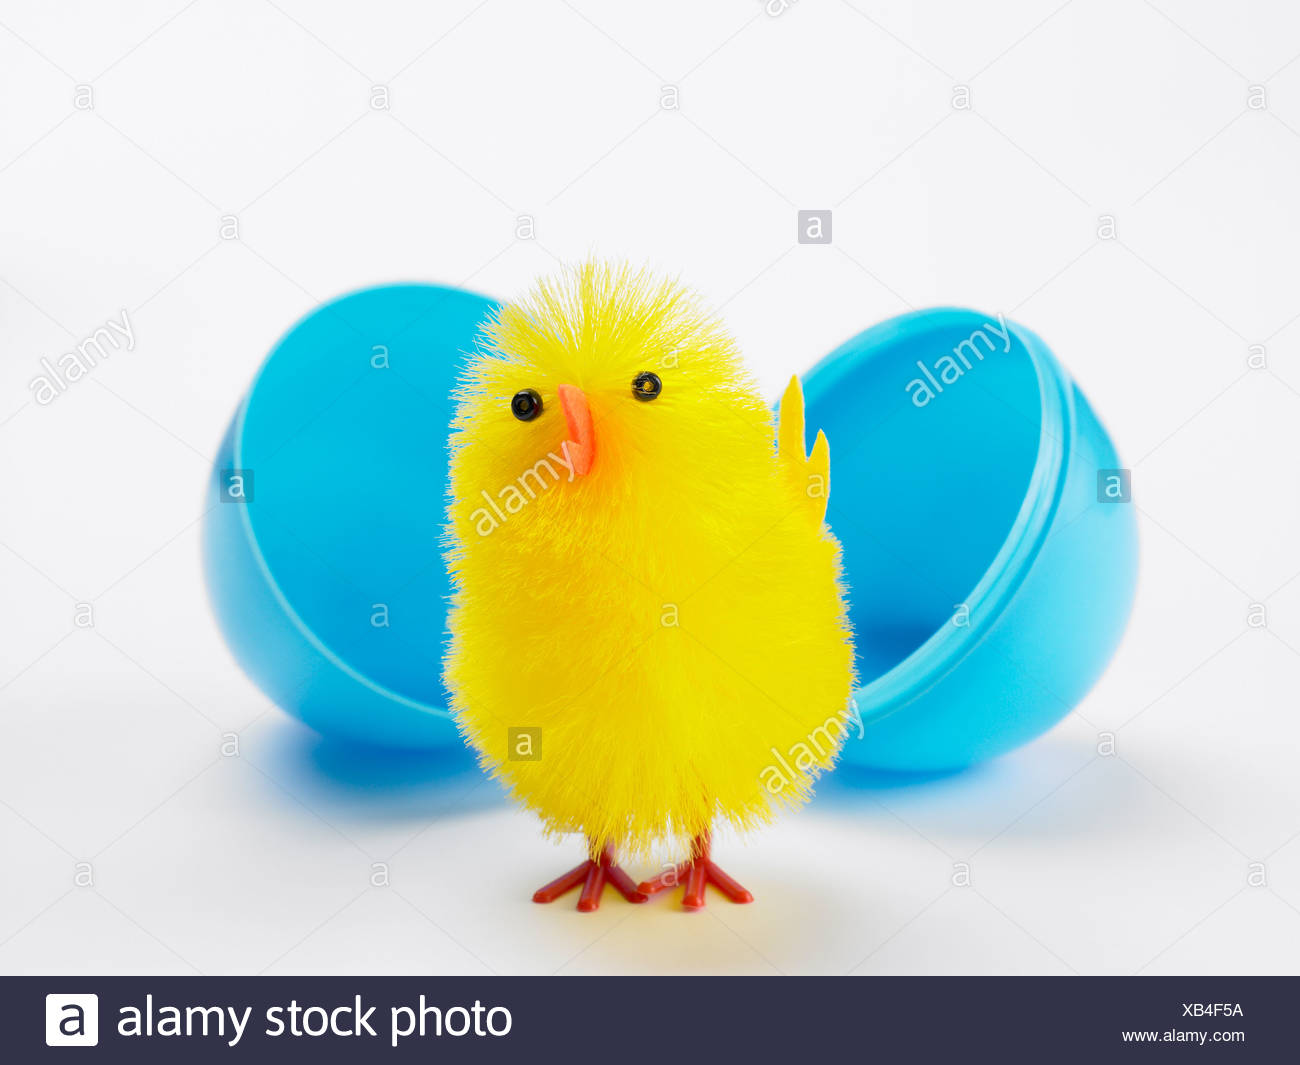 Easter Chick Hatching Out Of Egg - Stock Image